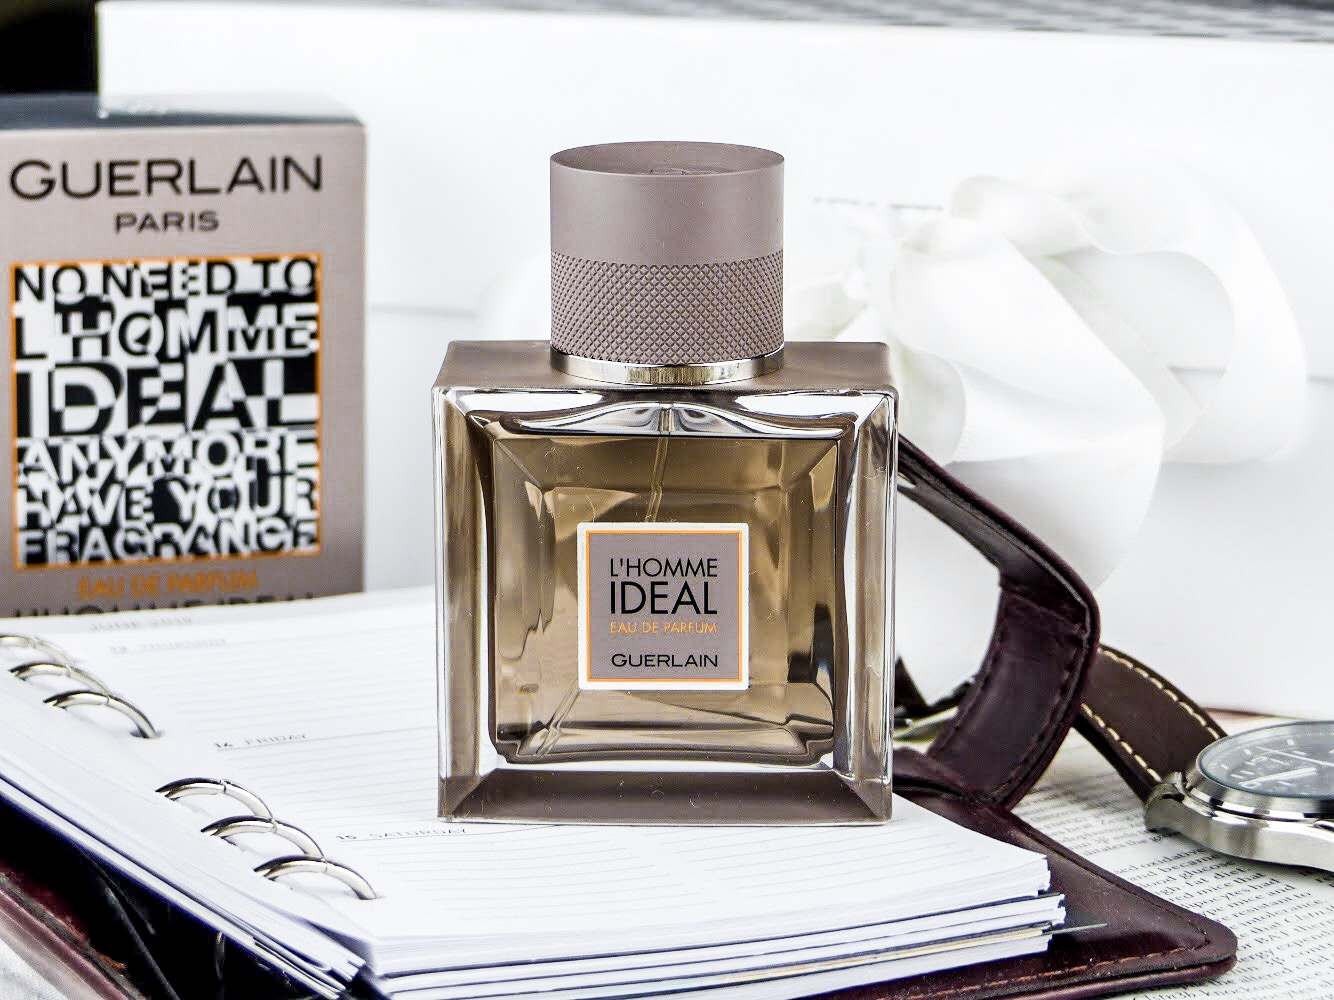 Guerlain: L'homme Ideal